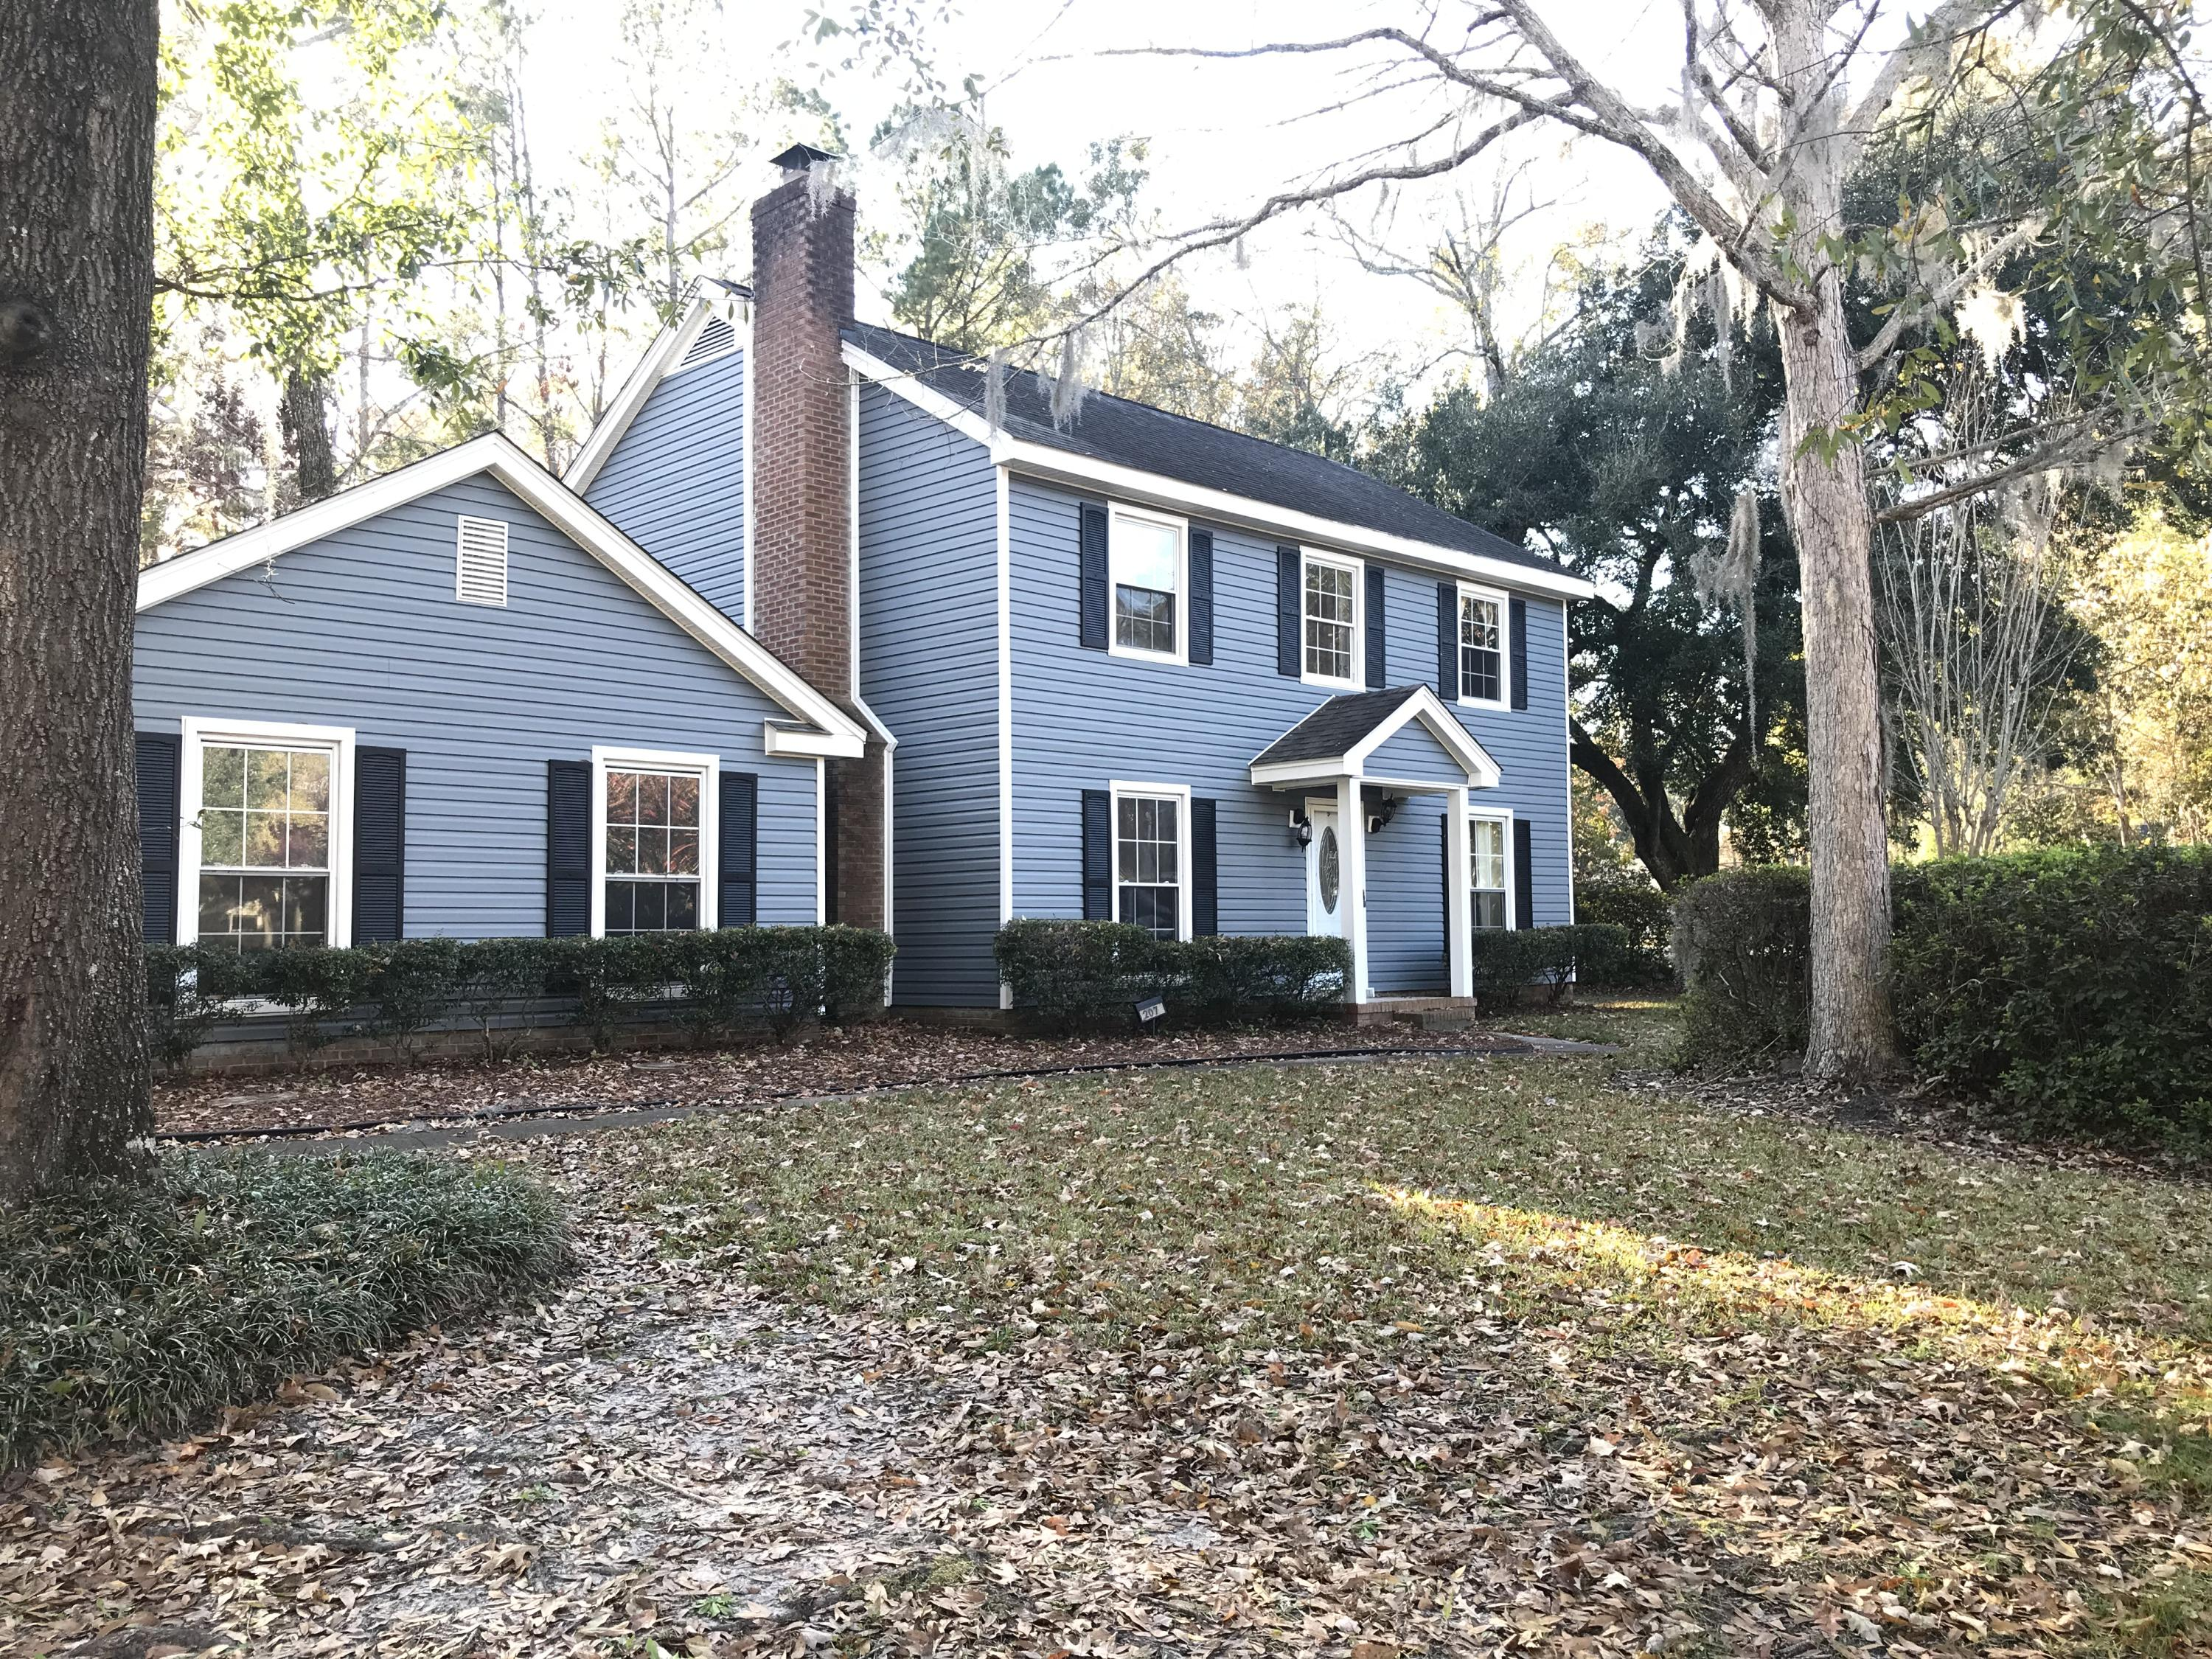 207 Savannah Round Summerville, SC 29485